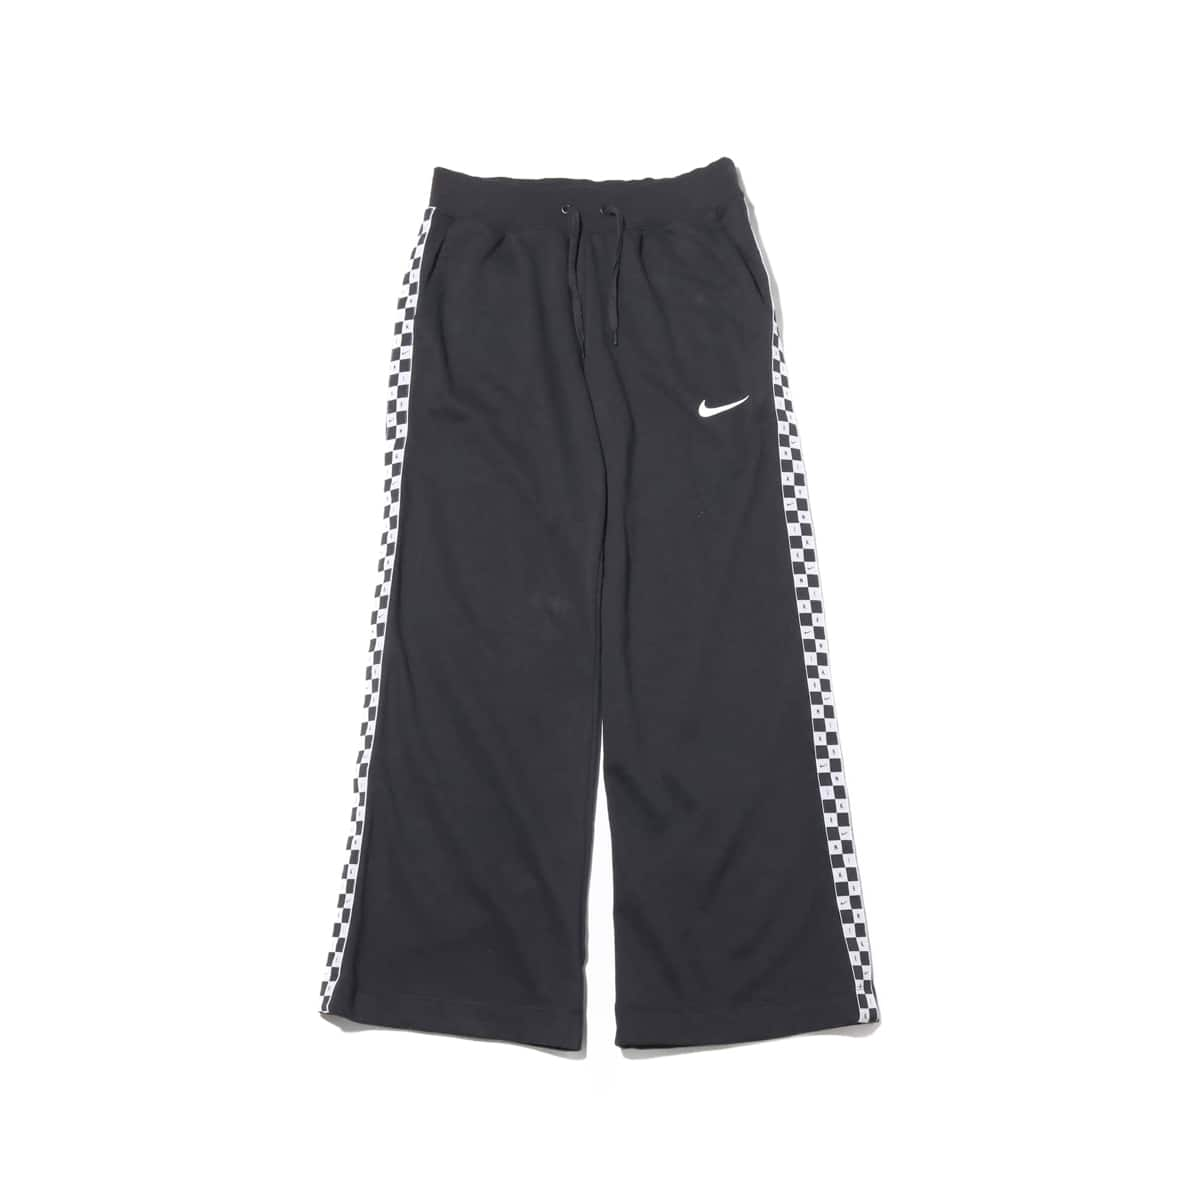 NIKE AS W NSW HYP FM PANT FLC BLACK/WHITE 19SU-I_photo_large